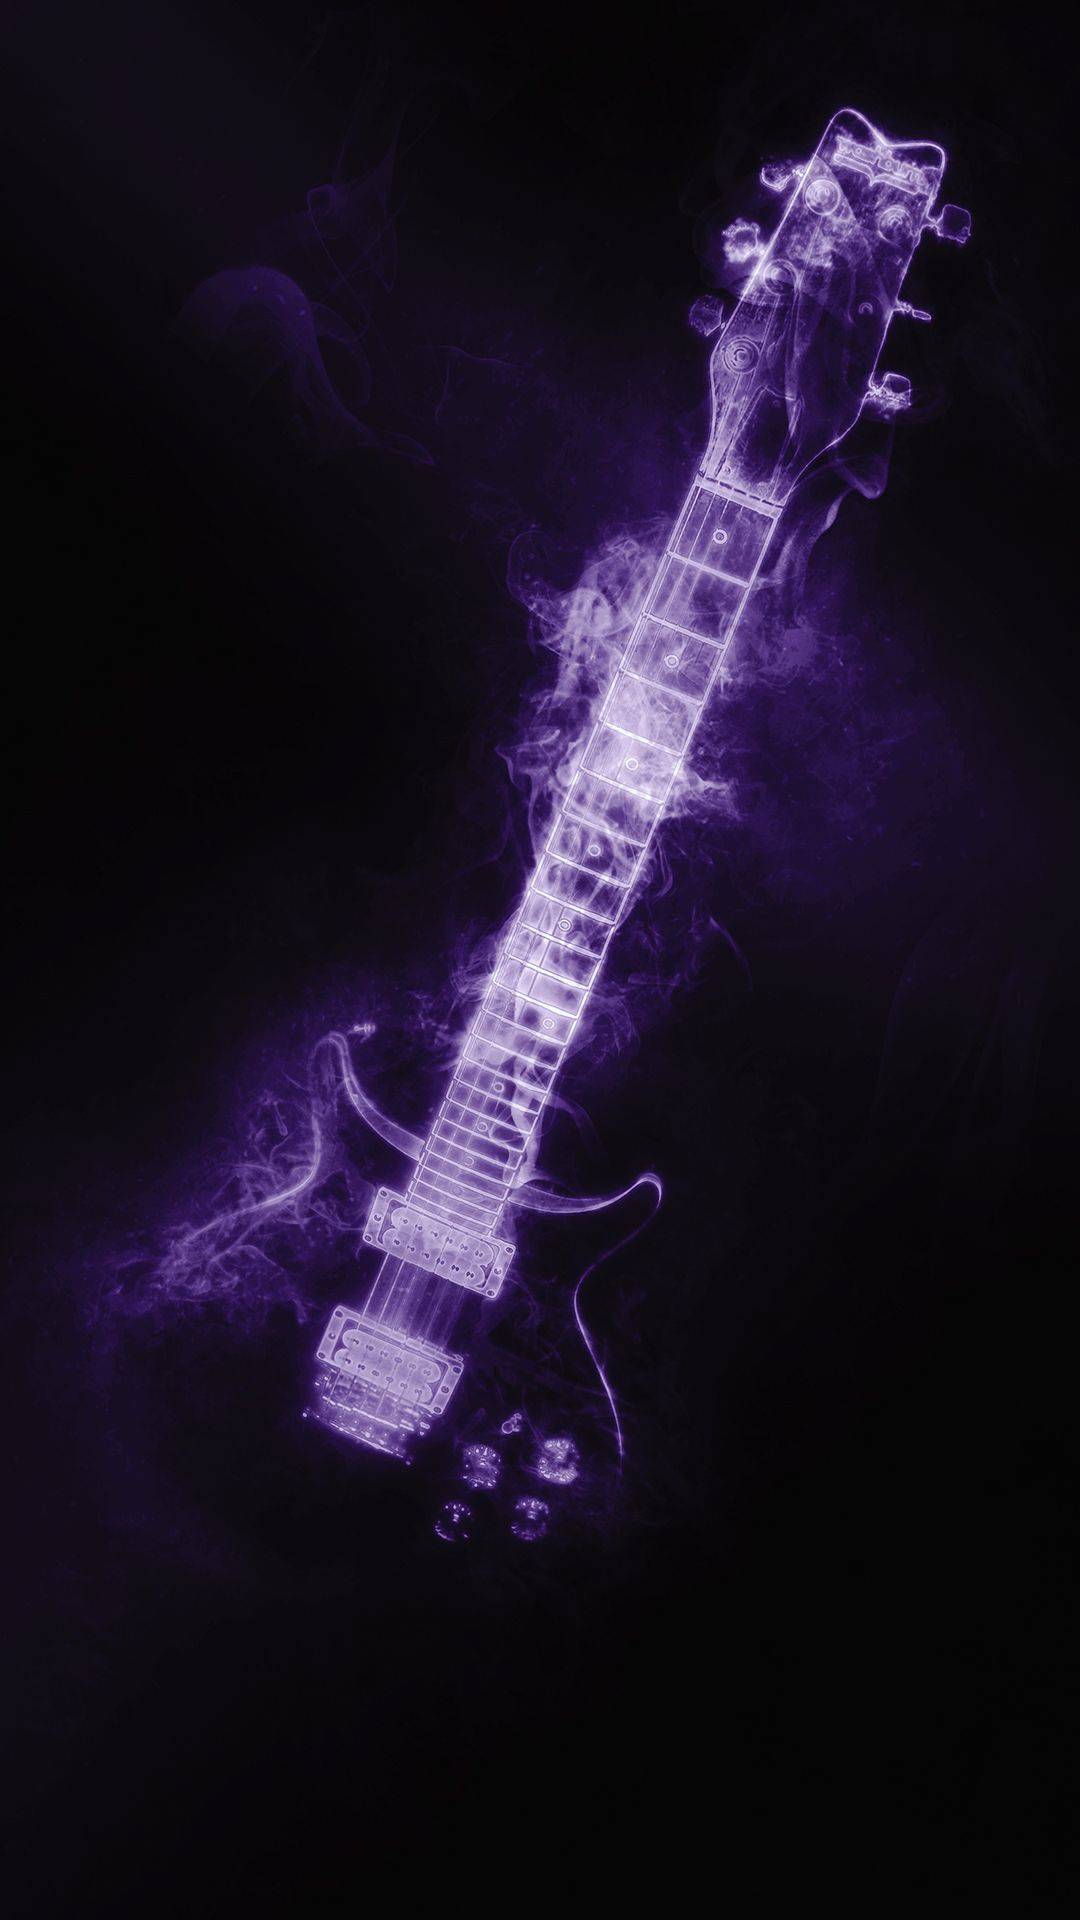 1080x1920 Smoking Guitar HD Wallpaper For Your Mobile Phone ...3588